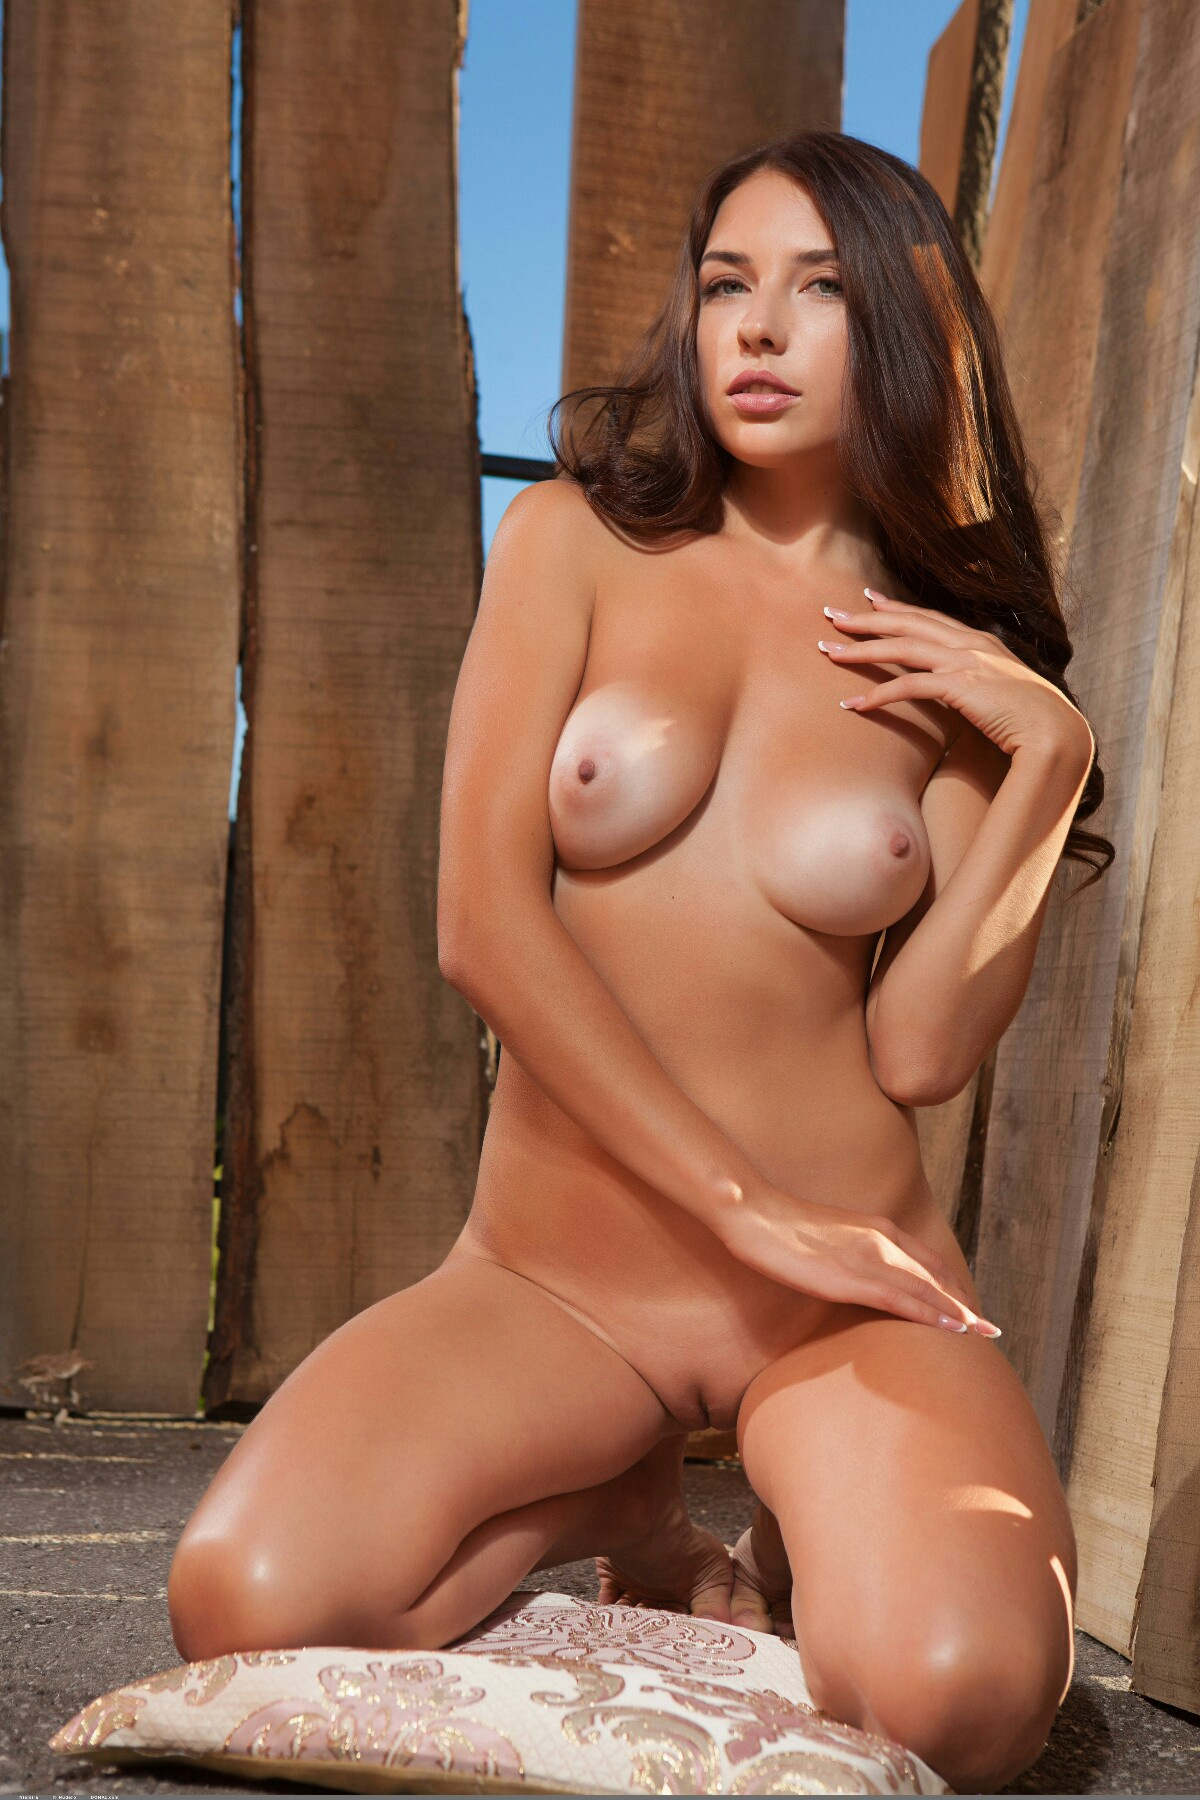 shaved-busty-gorgeous-brunette-babe-niemira-with-beautiful-pussy-from-domai-12.jpg